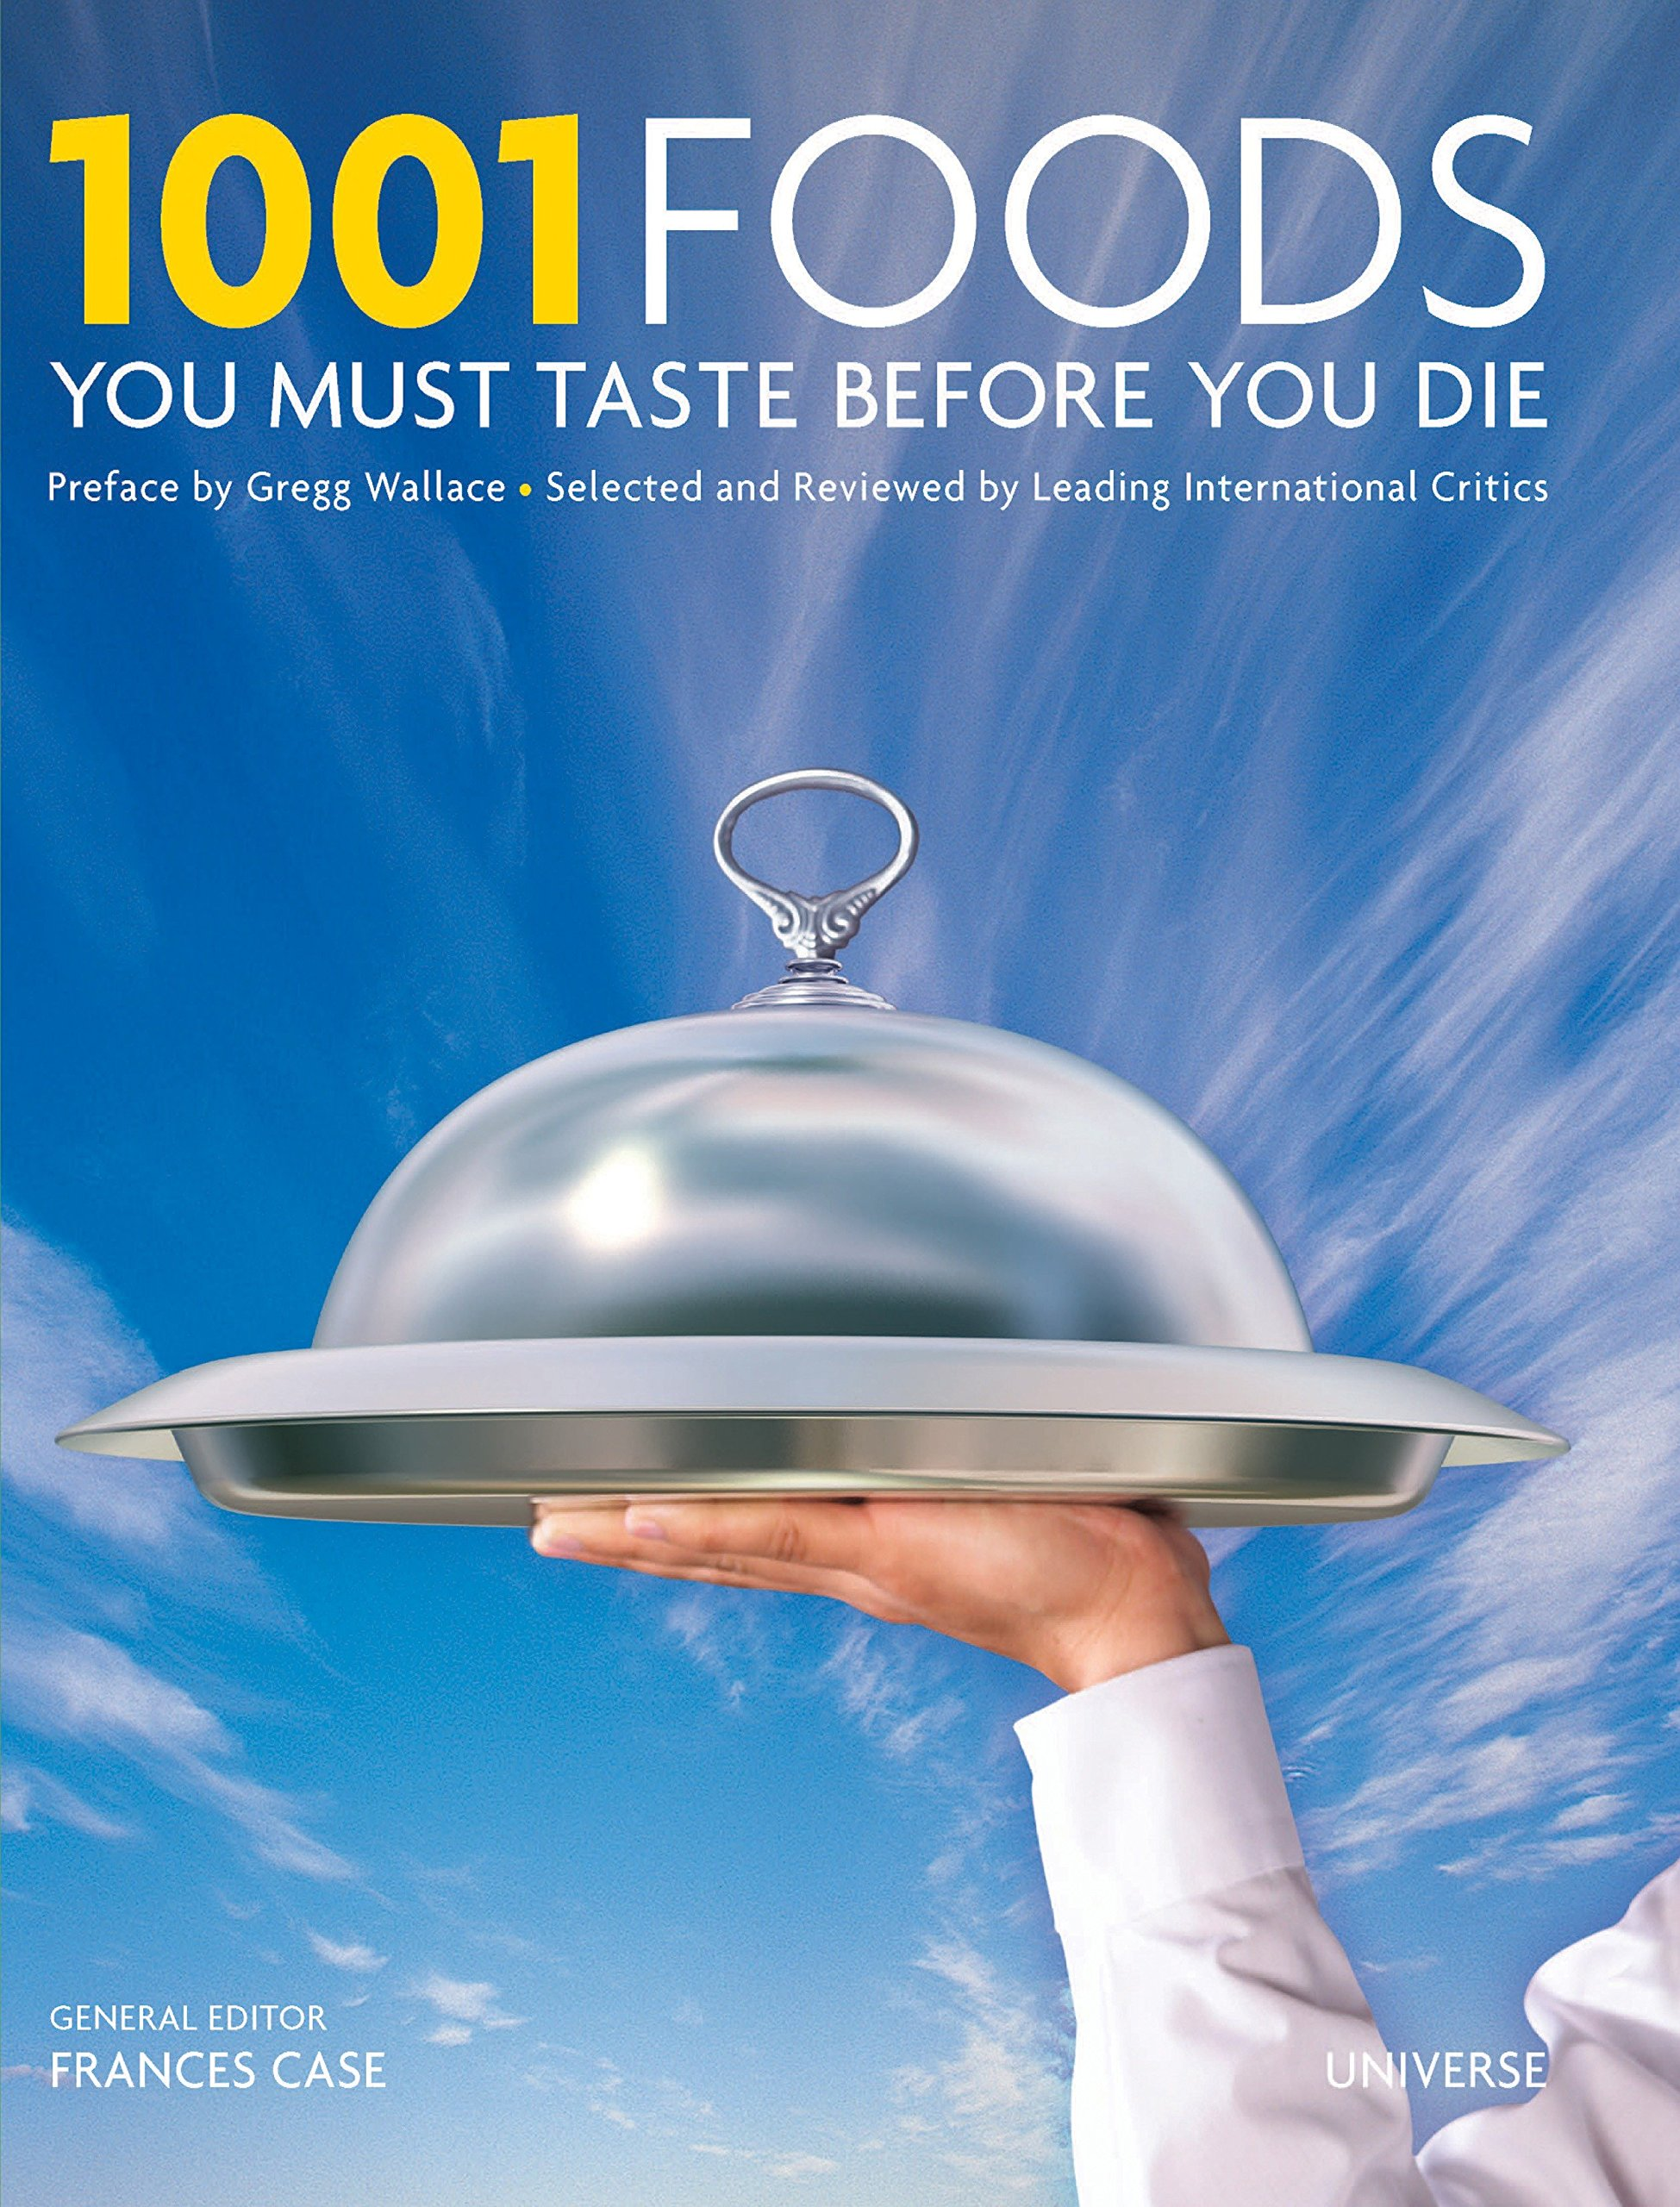 1001 Foods You Must Taste Before You Die: Universe, Frances Case, Gregg  Wallace: 9780789315922: Amazon.com: Books